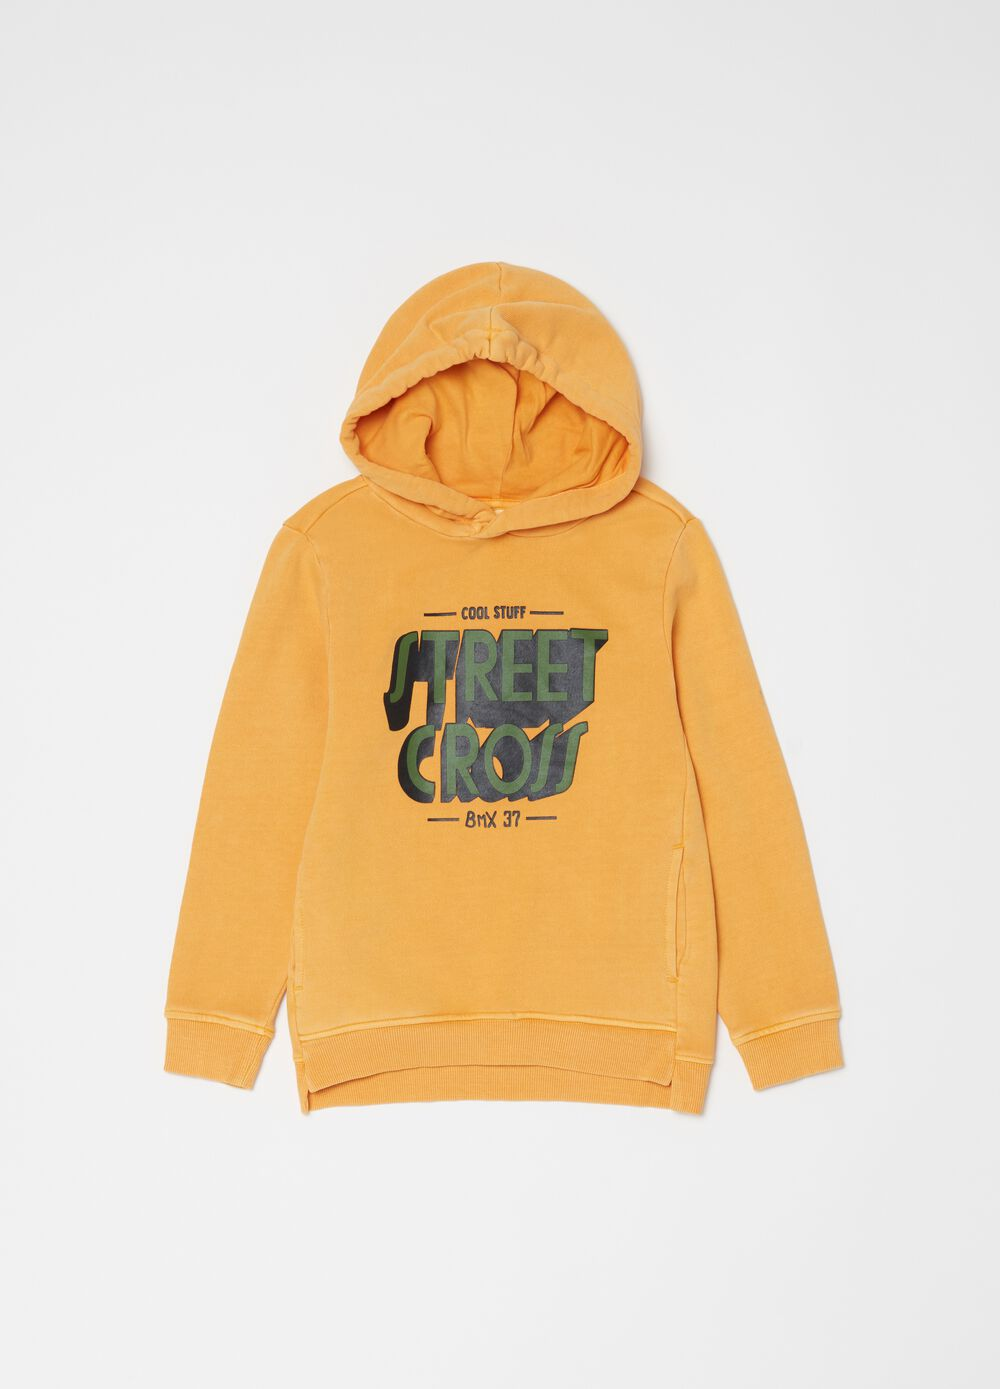 100% cotton sweatshirt with hood and print